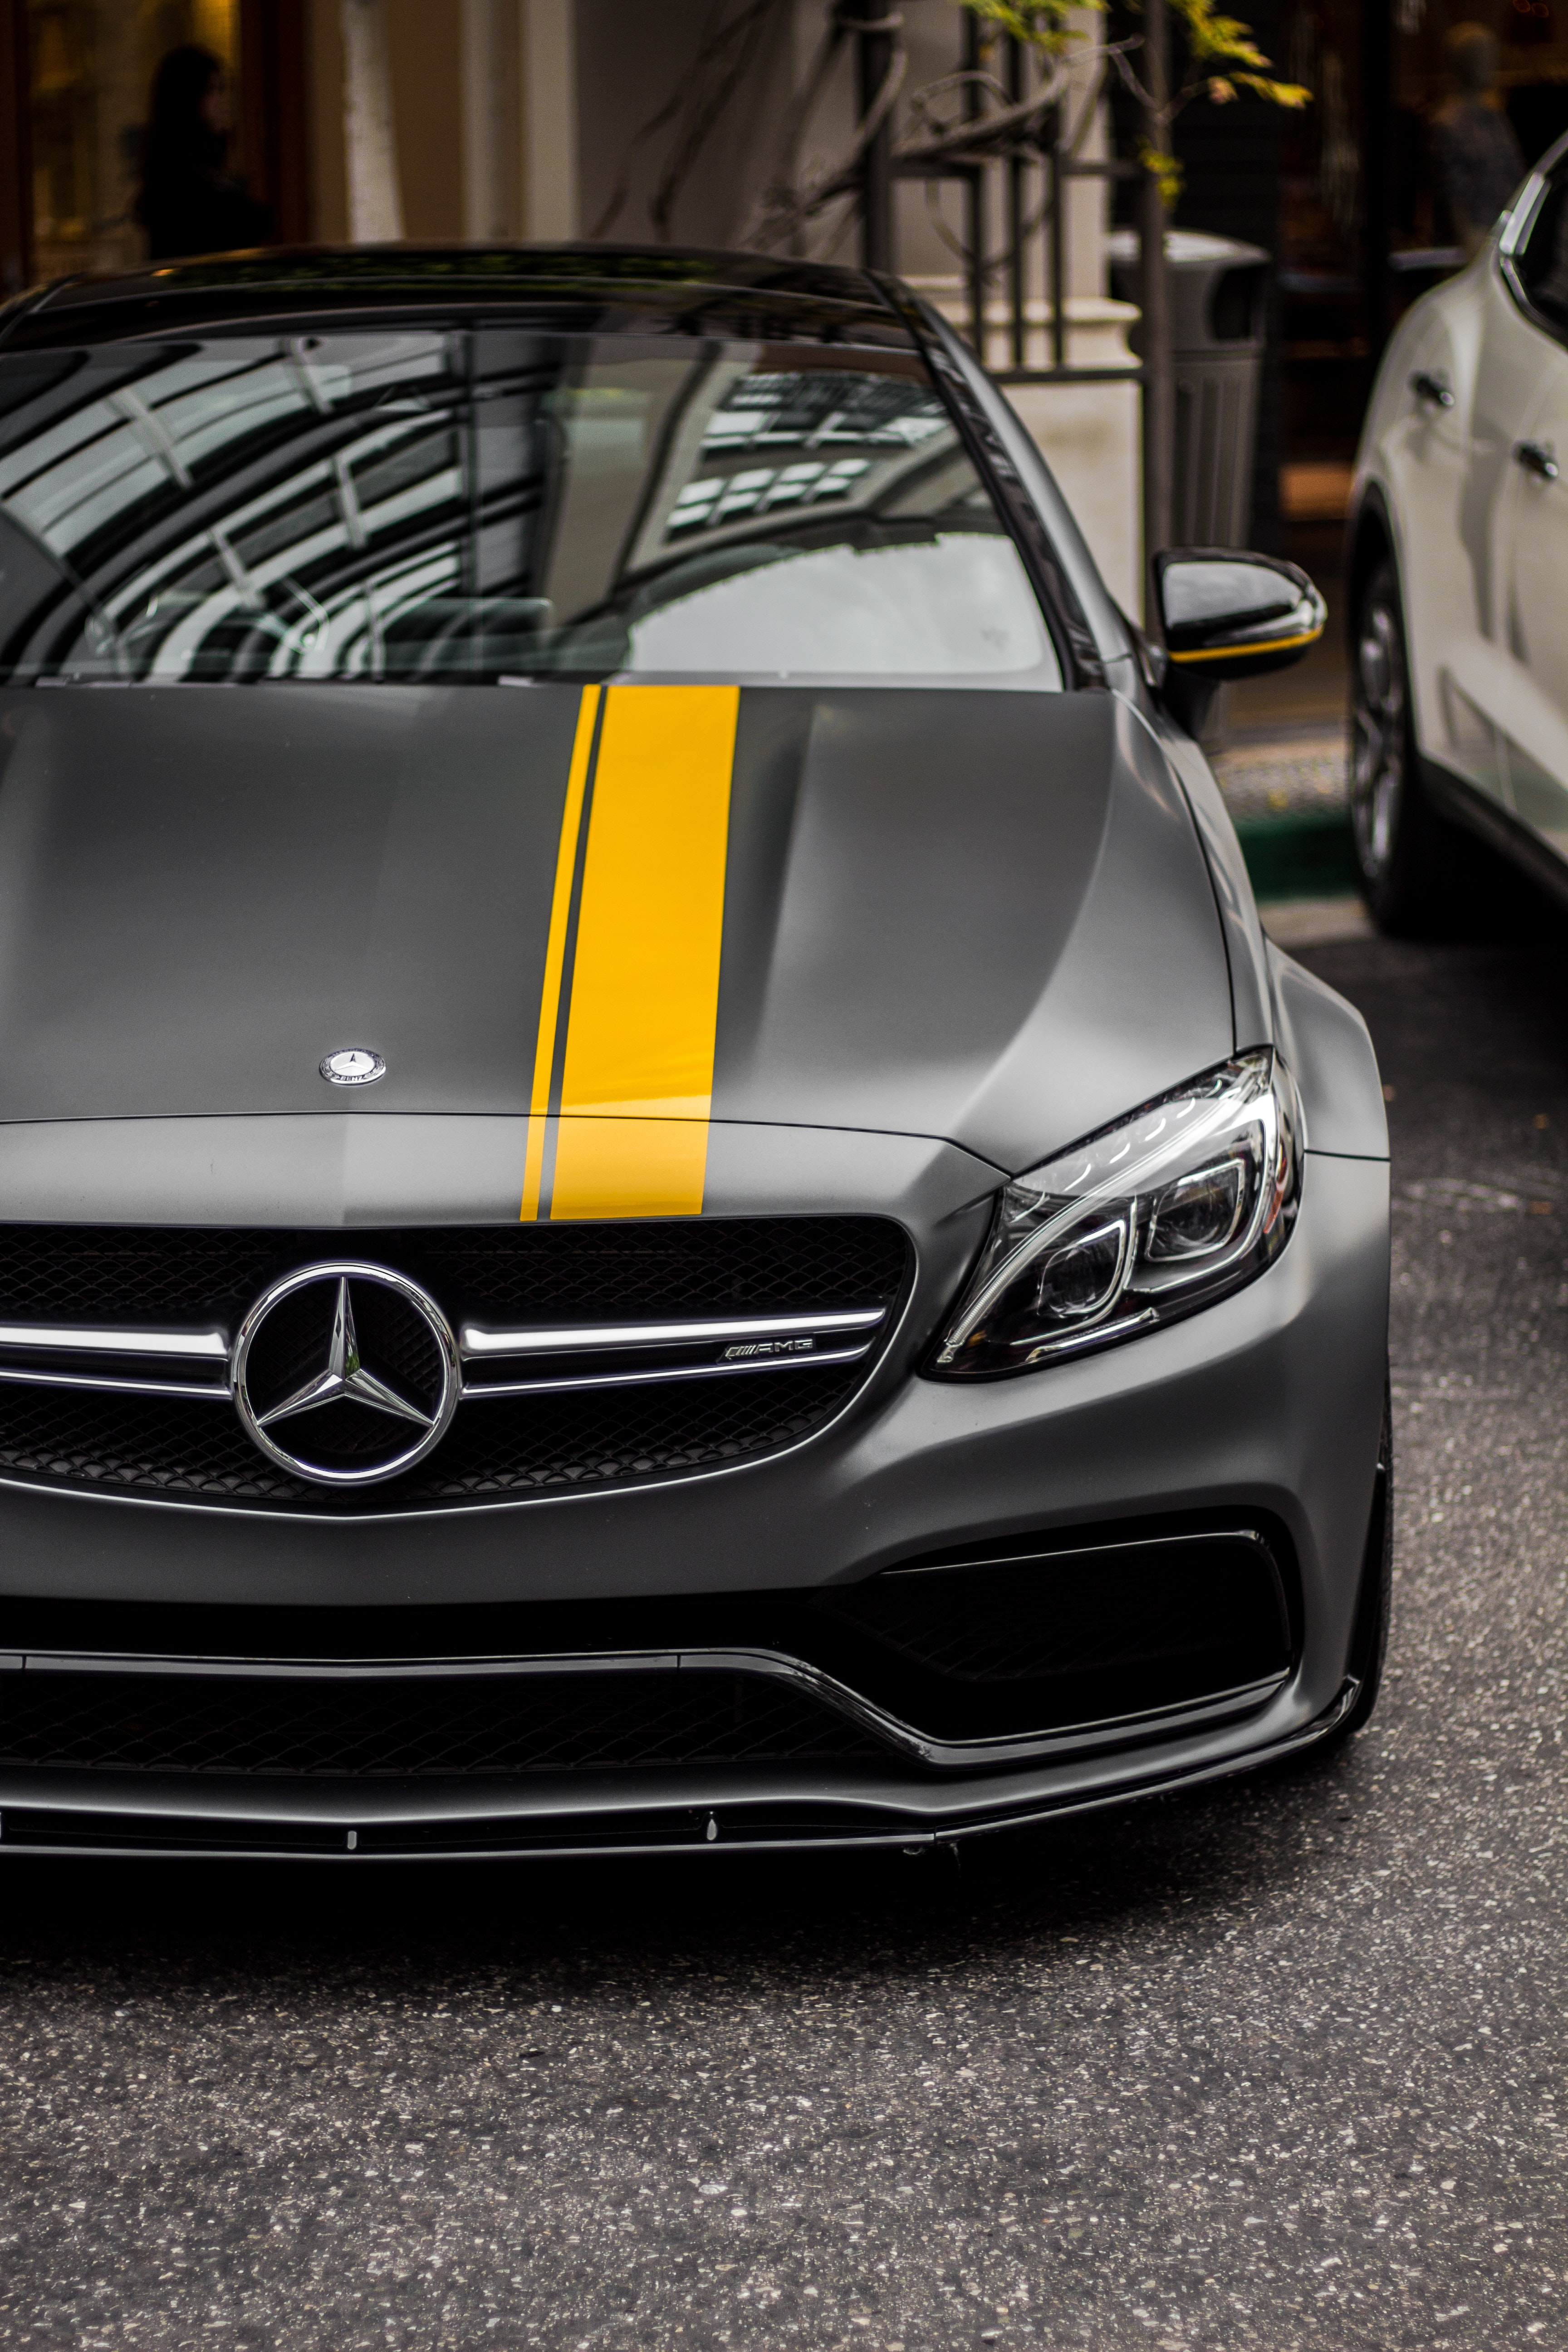 black Mercedes-Benz car